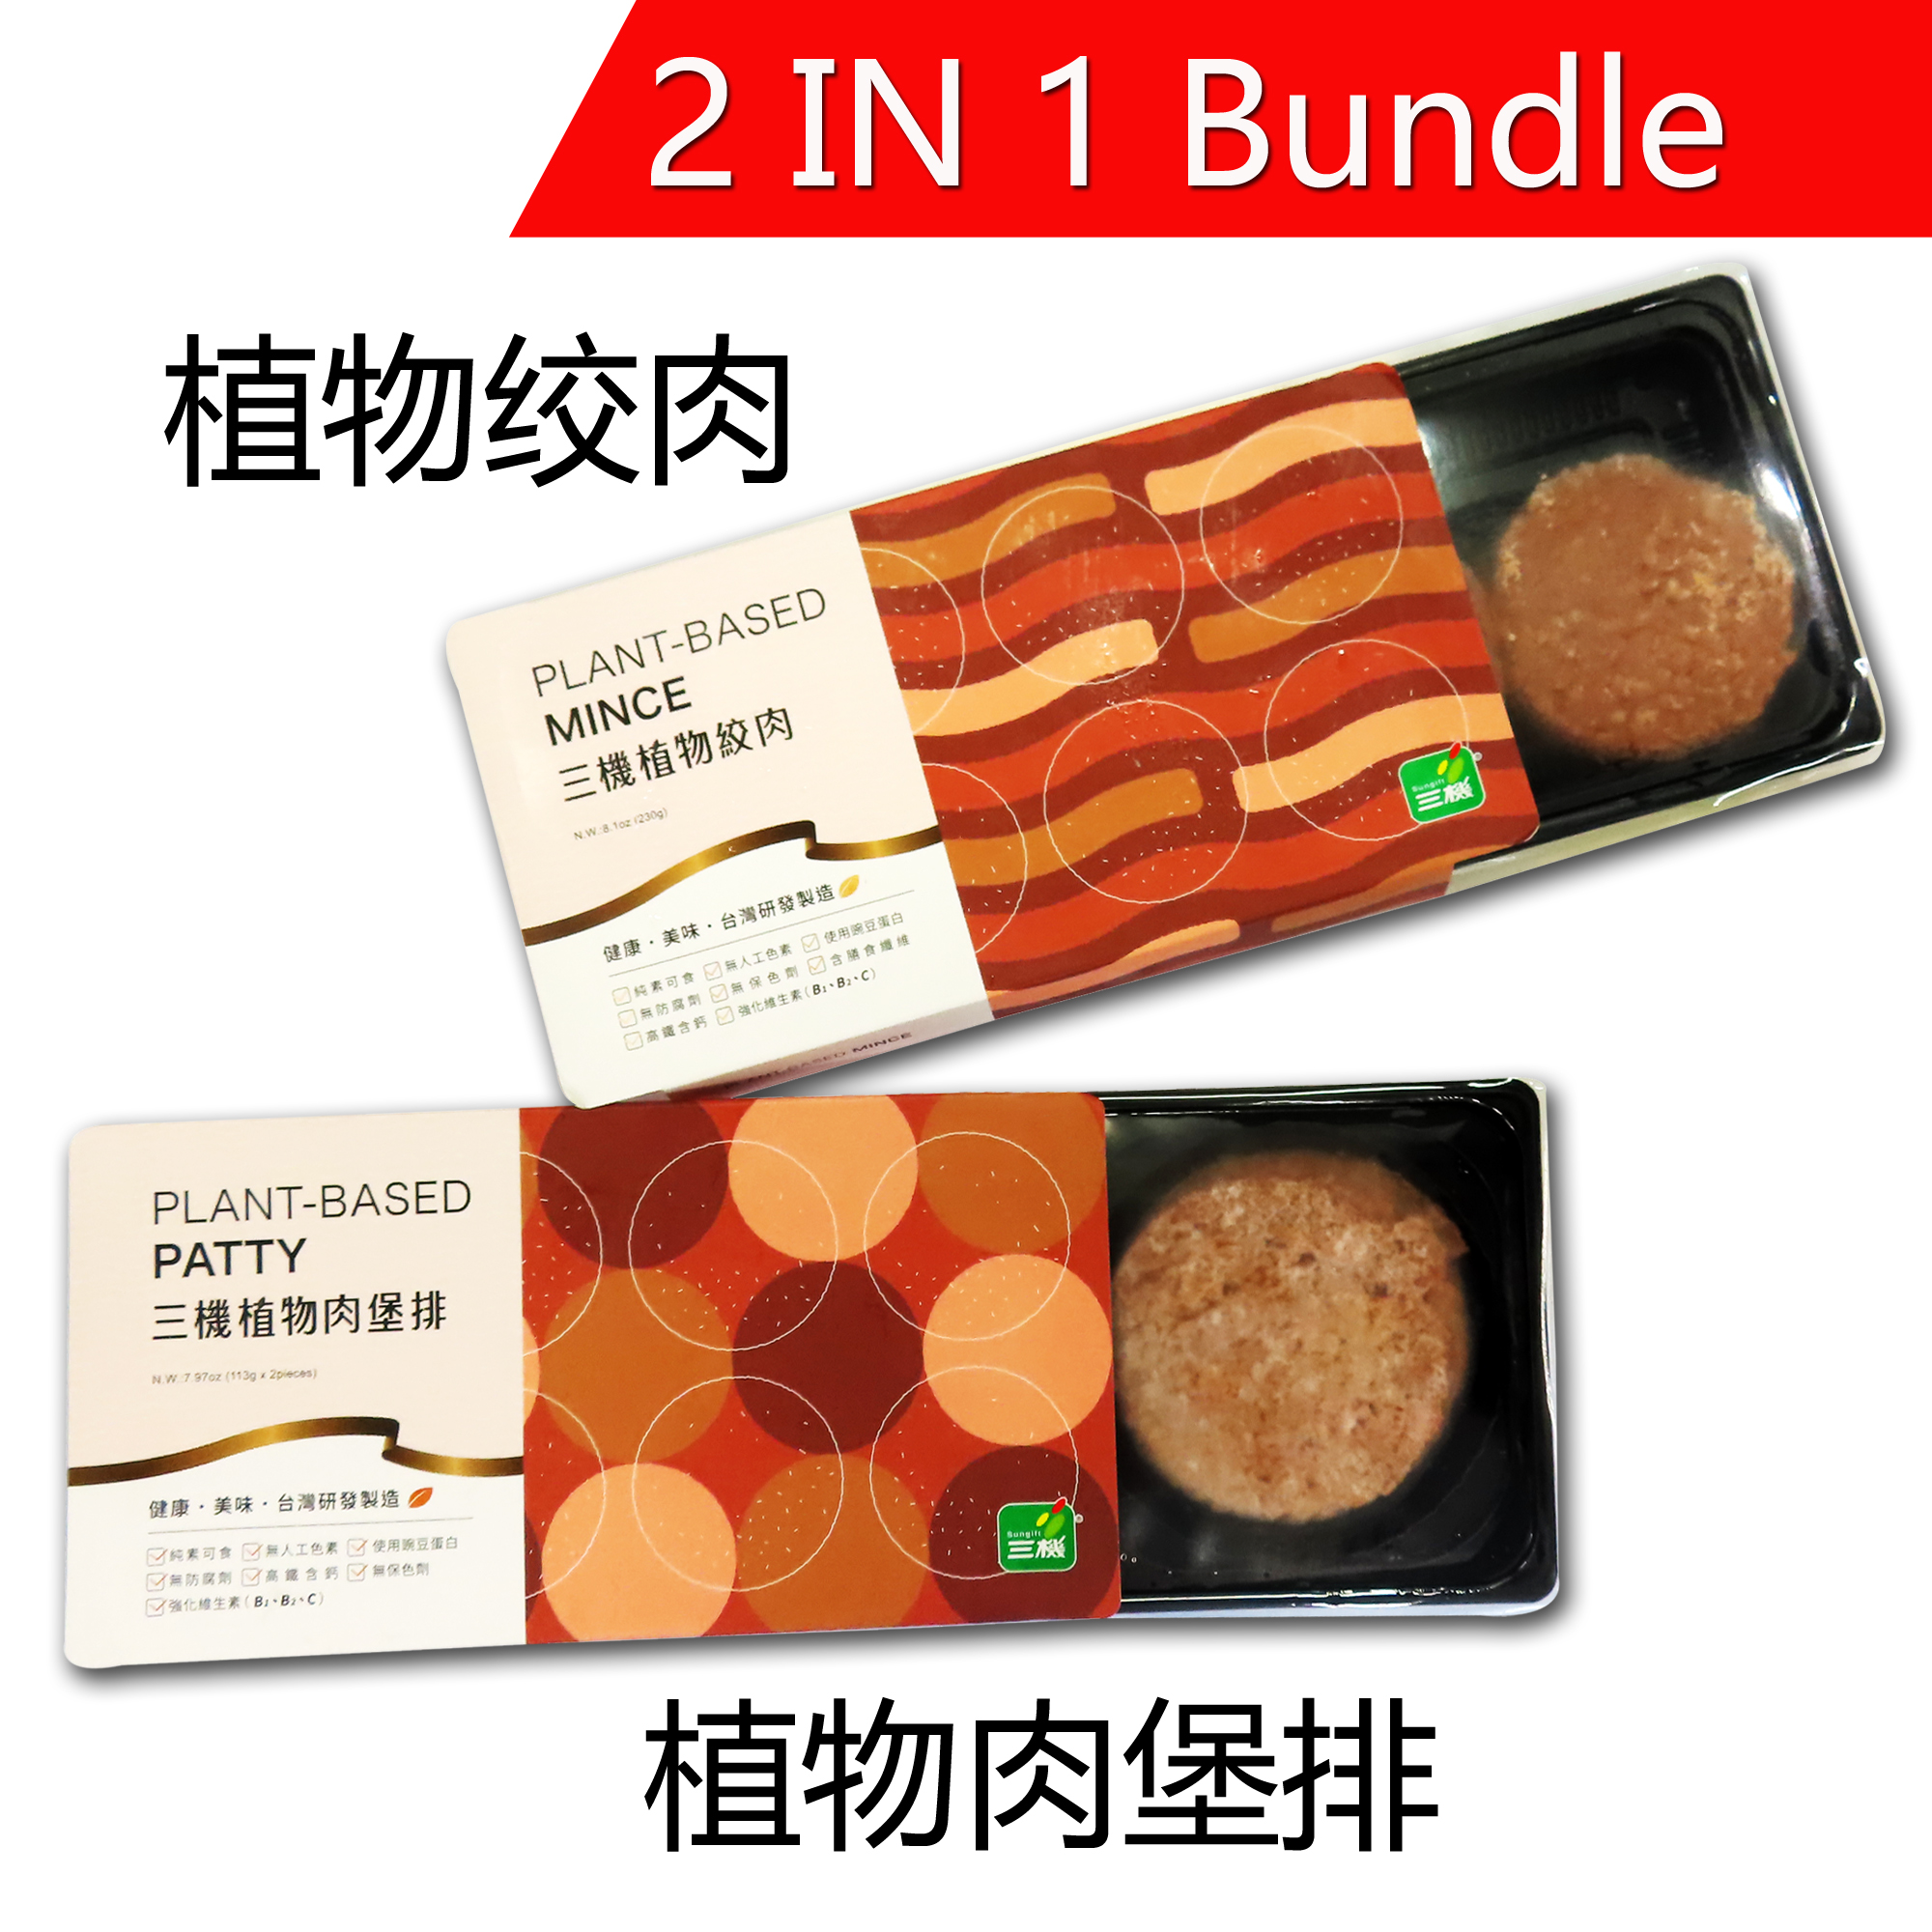 Image Sungift Plant based 2 BOX MINCE AND PATTY Bundle  三机植物绞肉 三机植物肉堡排配套 456 grams